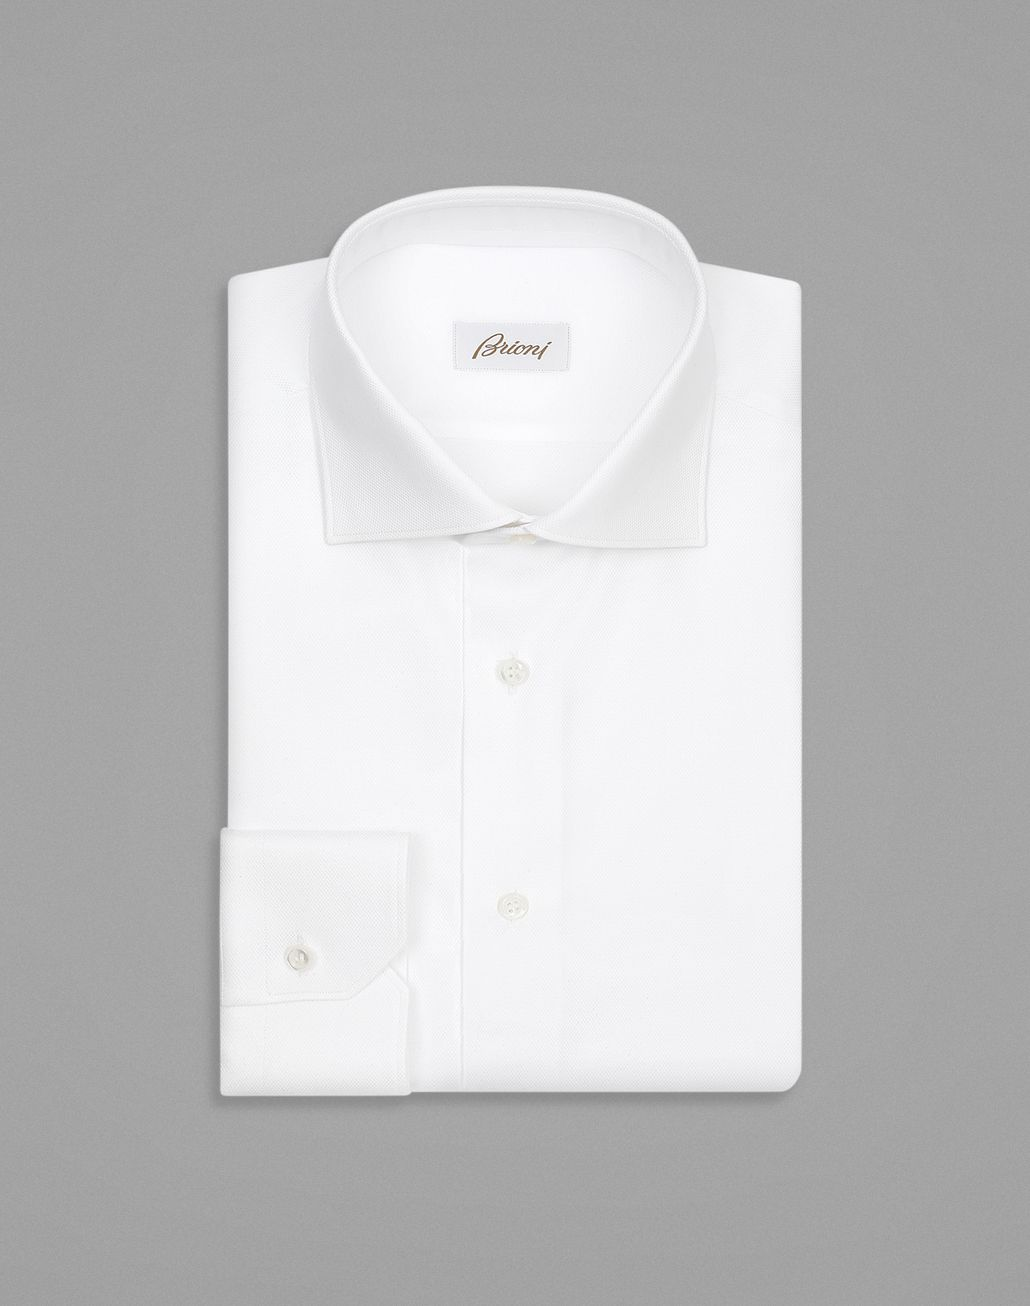 BRIONI White Tone-on-Tone Rhombus Design Formal Shirt Formal shirt Man f